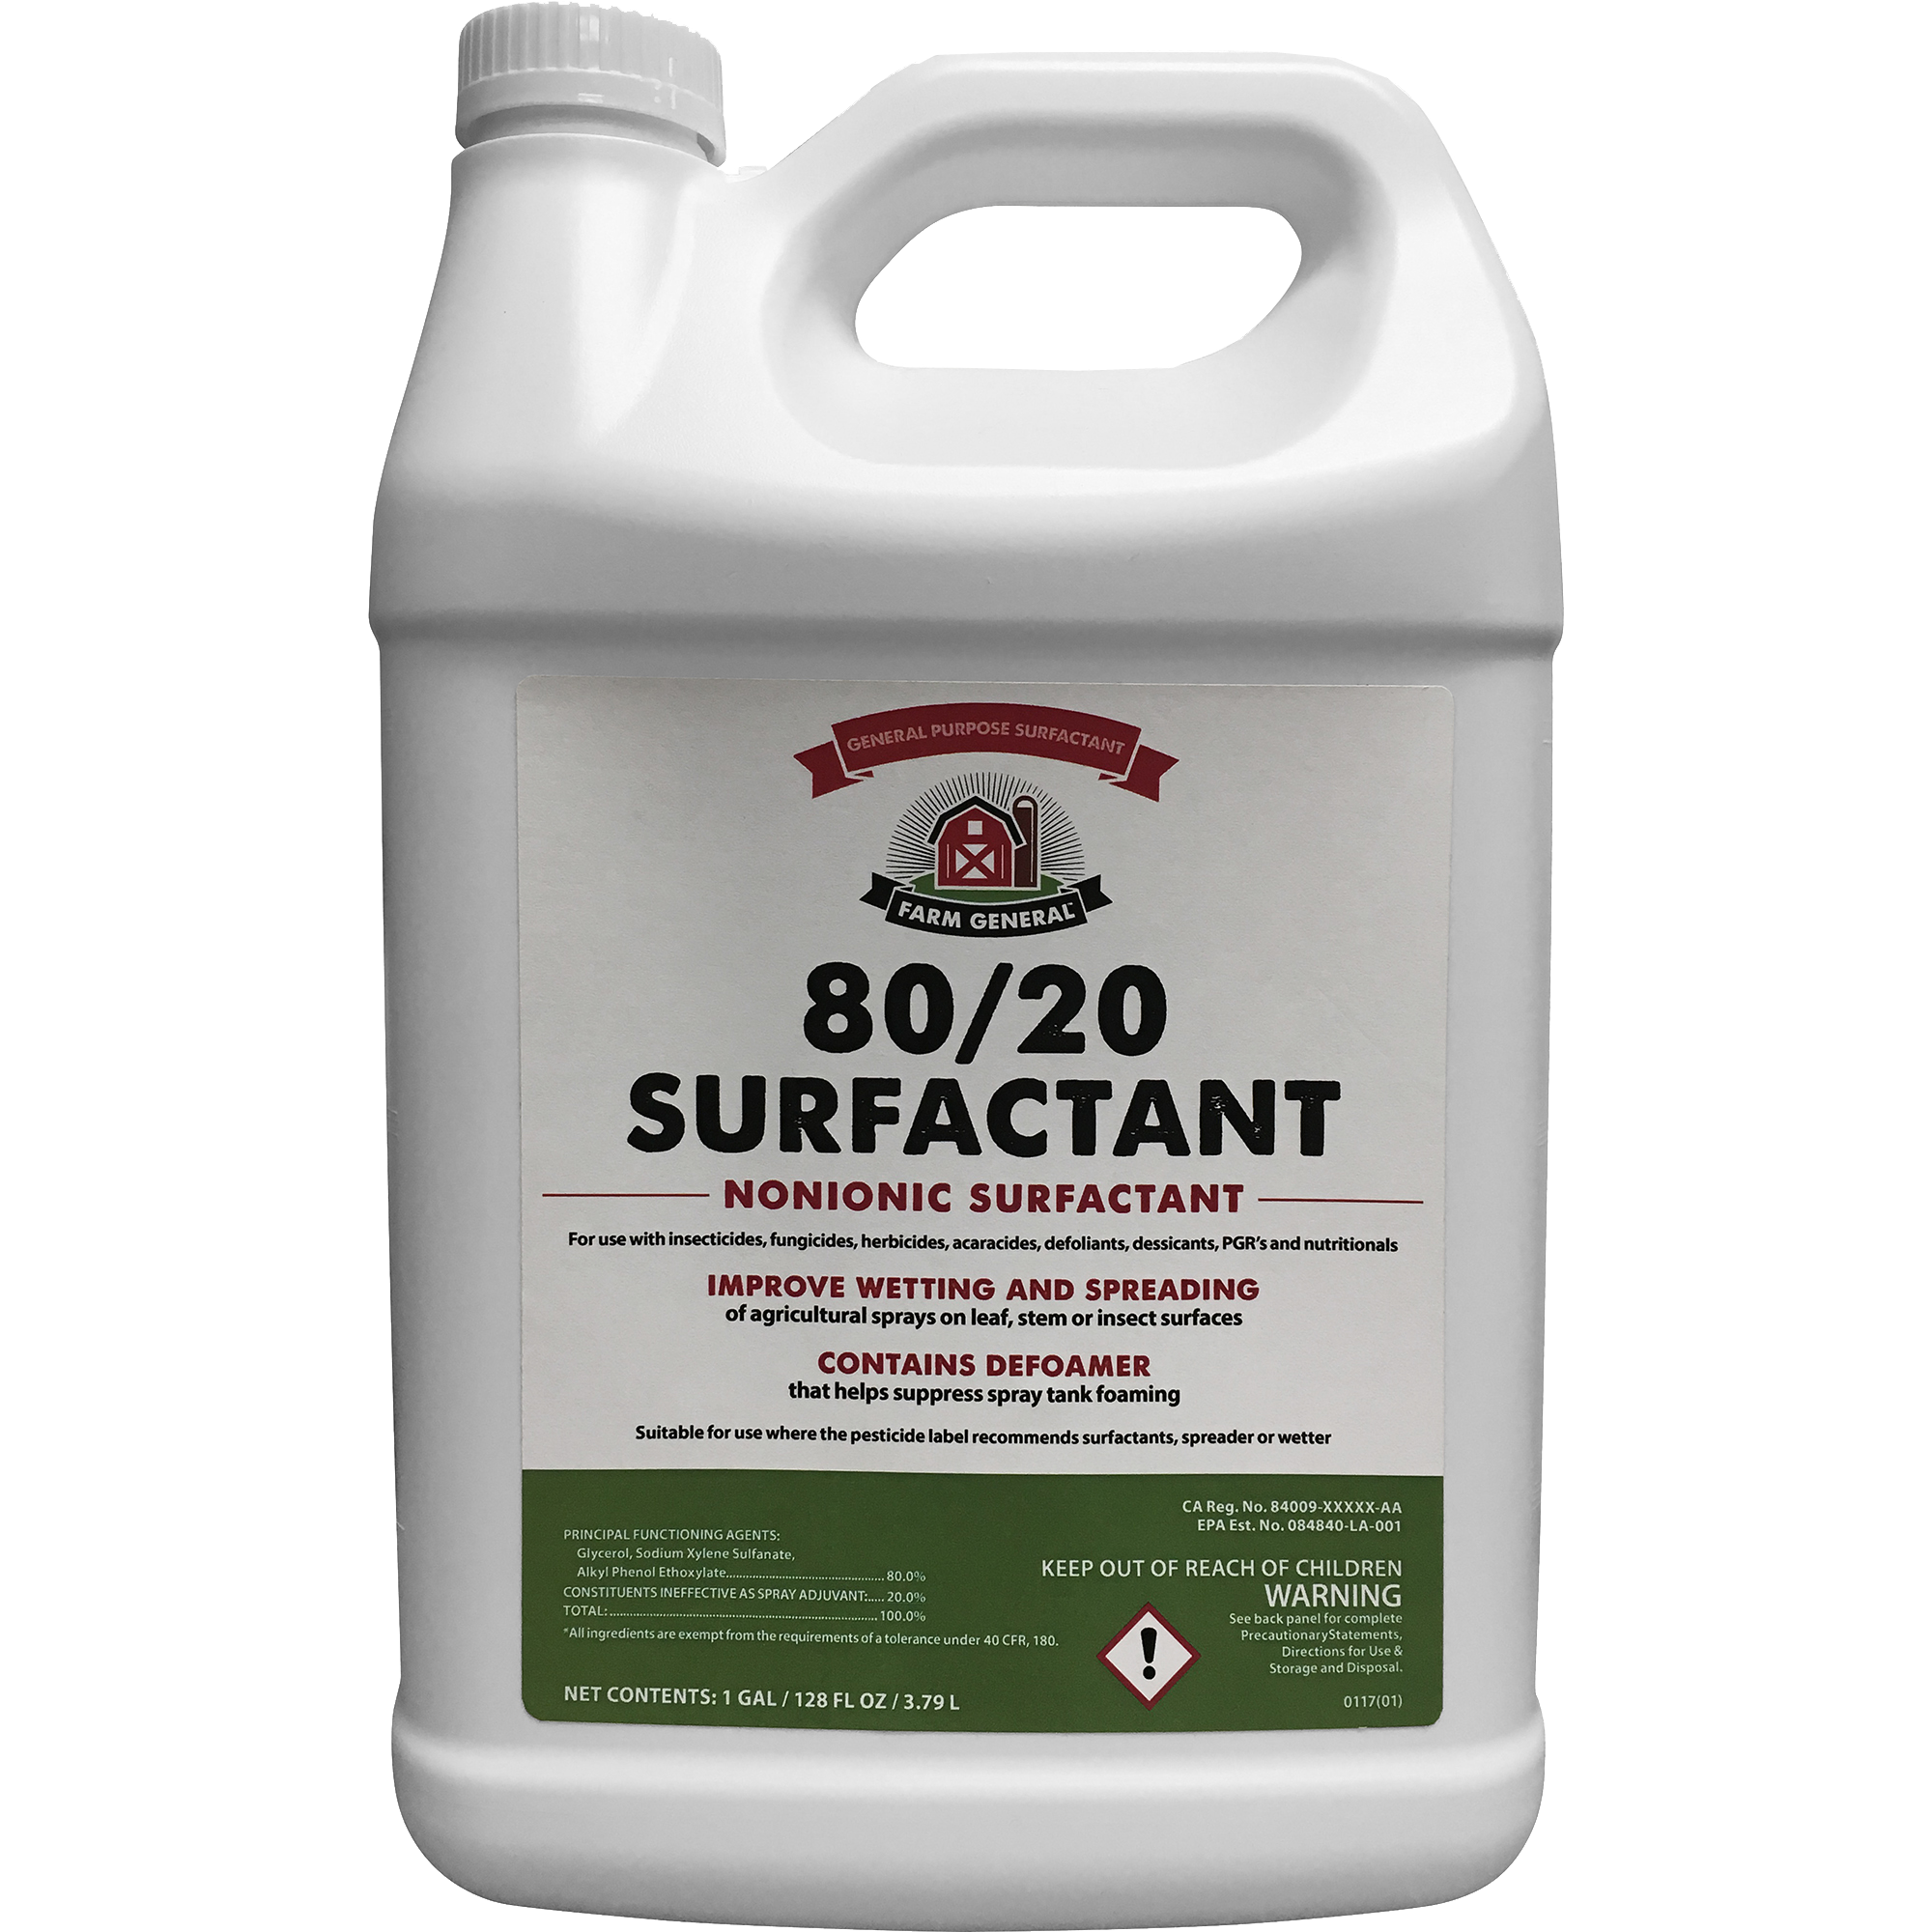 FARM GENERAL 80/20 SURFACTANT